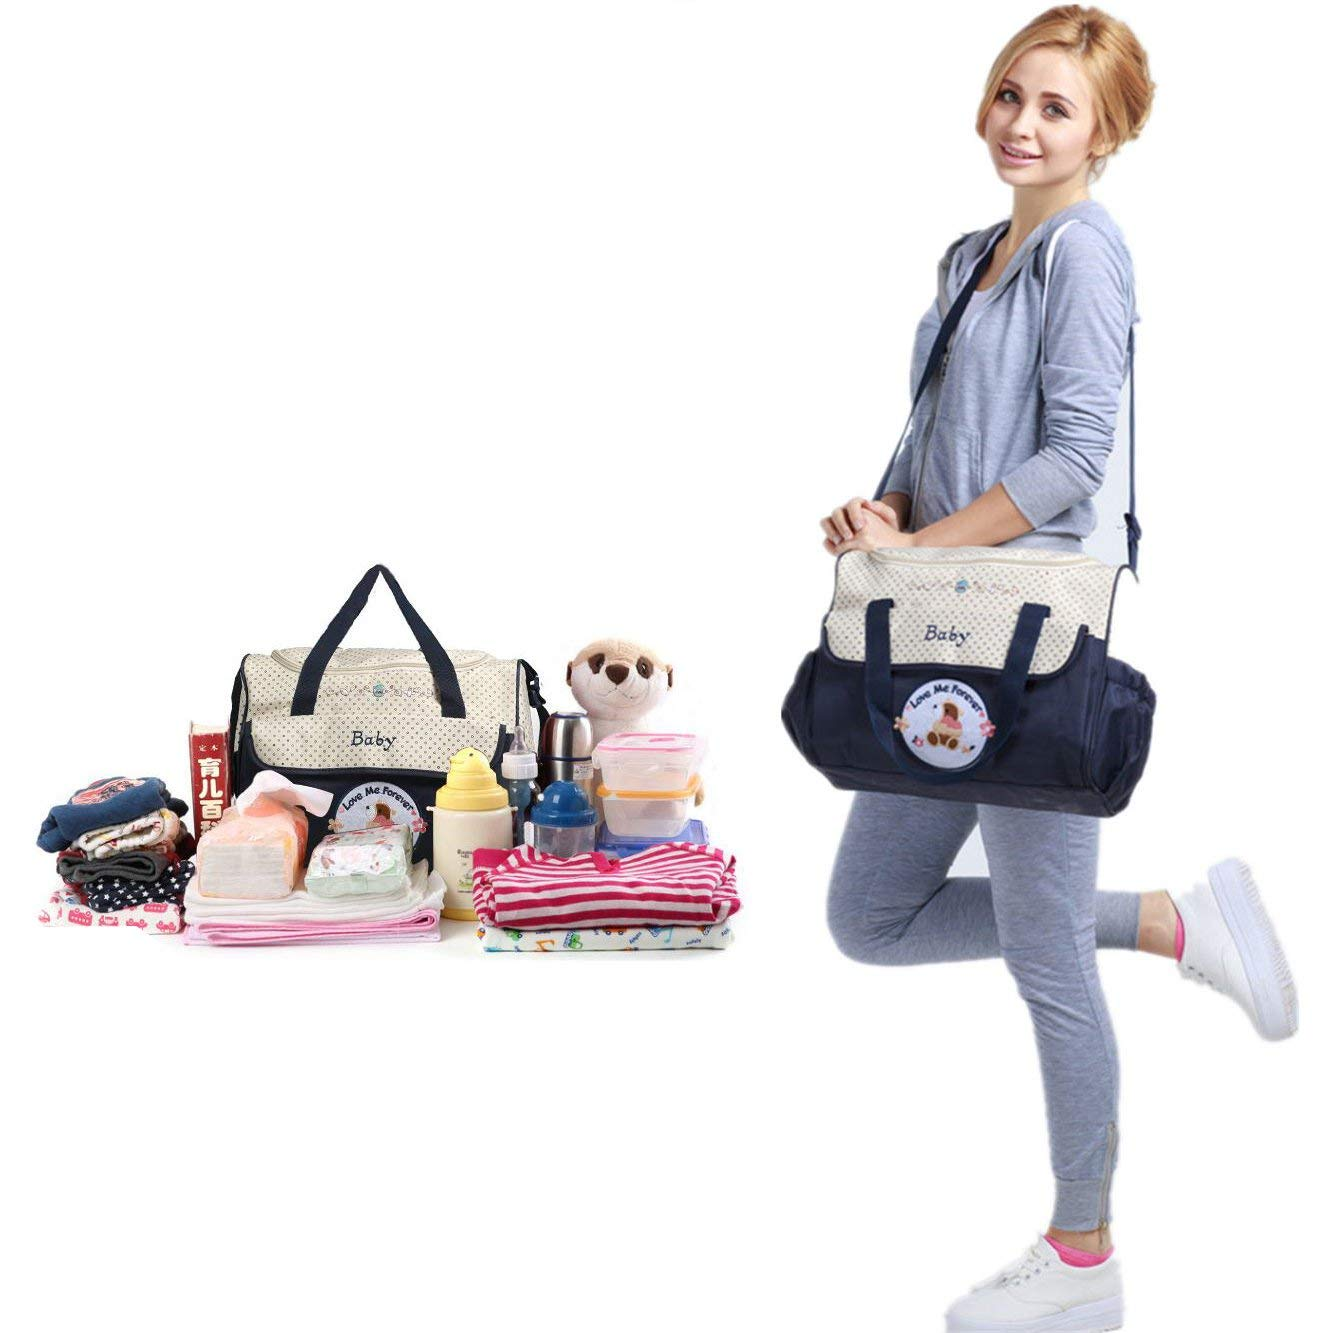 Multifunction Large Capacity Waterproof Insulated Mummy Bag Five Pieces from Mother and Child Package Shoulder Bag with Changing pad Navy Diaper Bag for Baby by